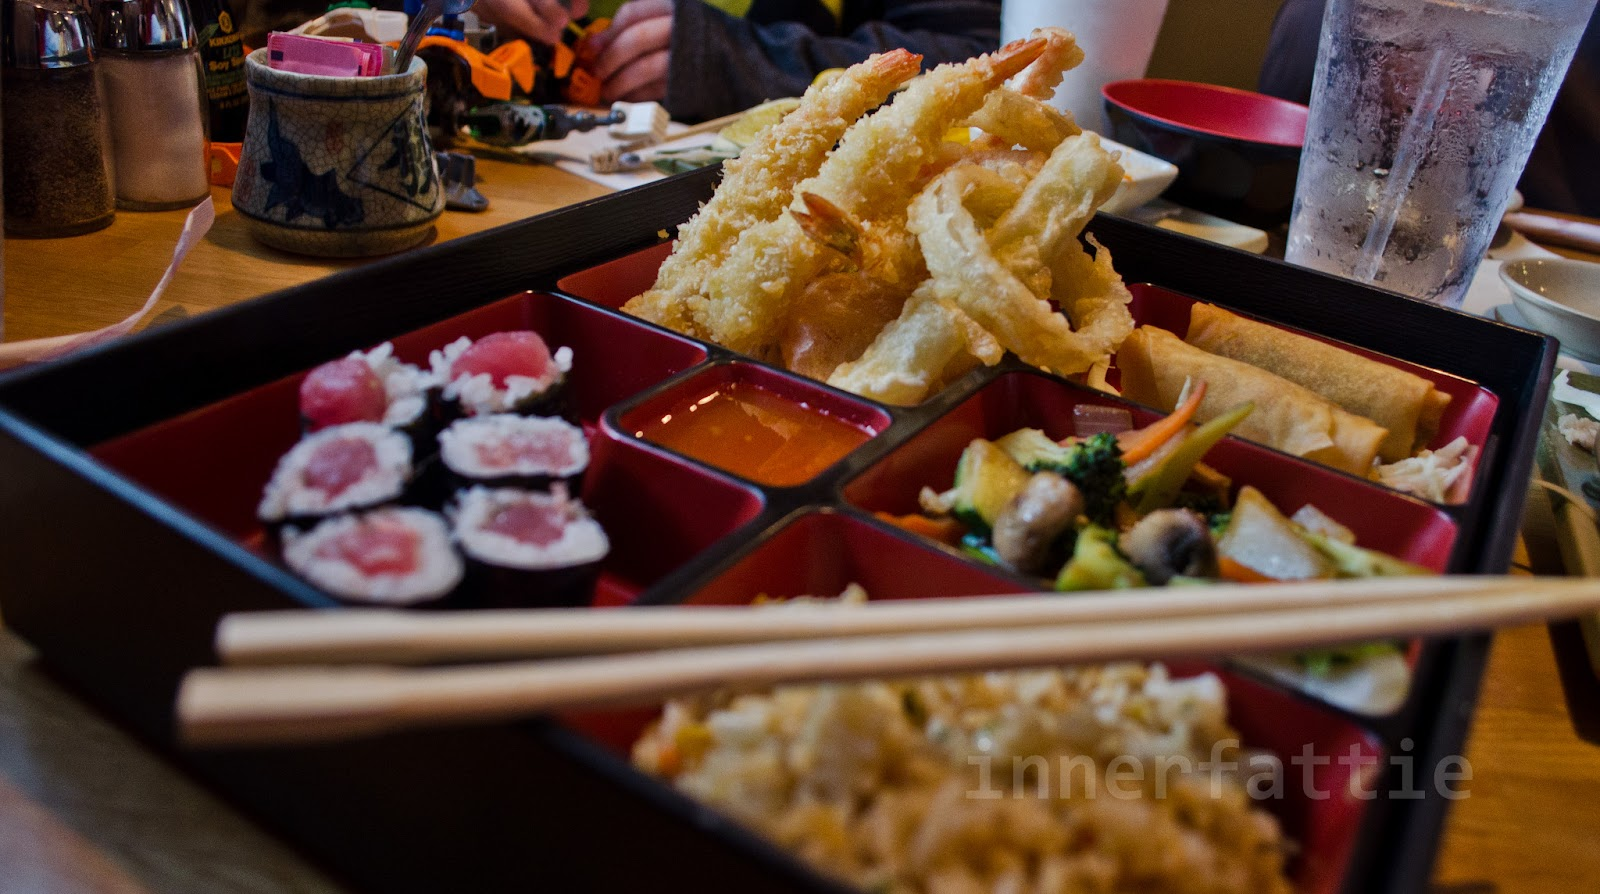 The Sake Cafe, One of a Kind | foodbaby